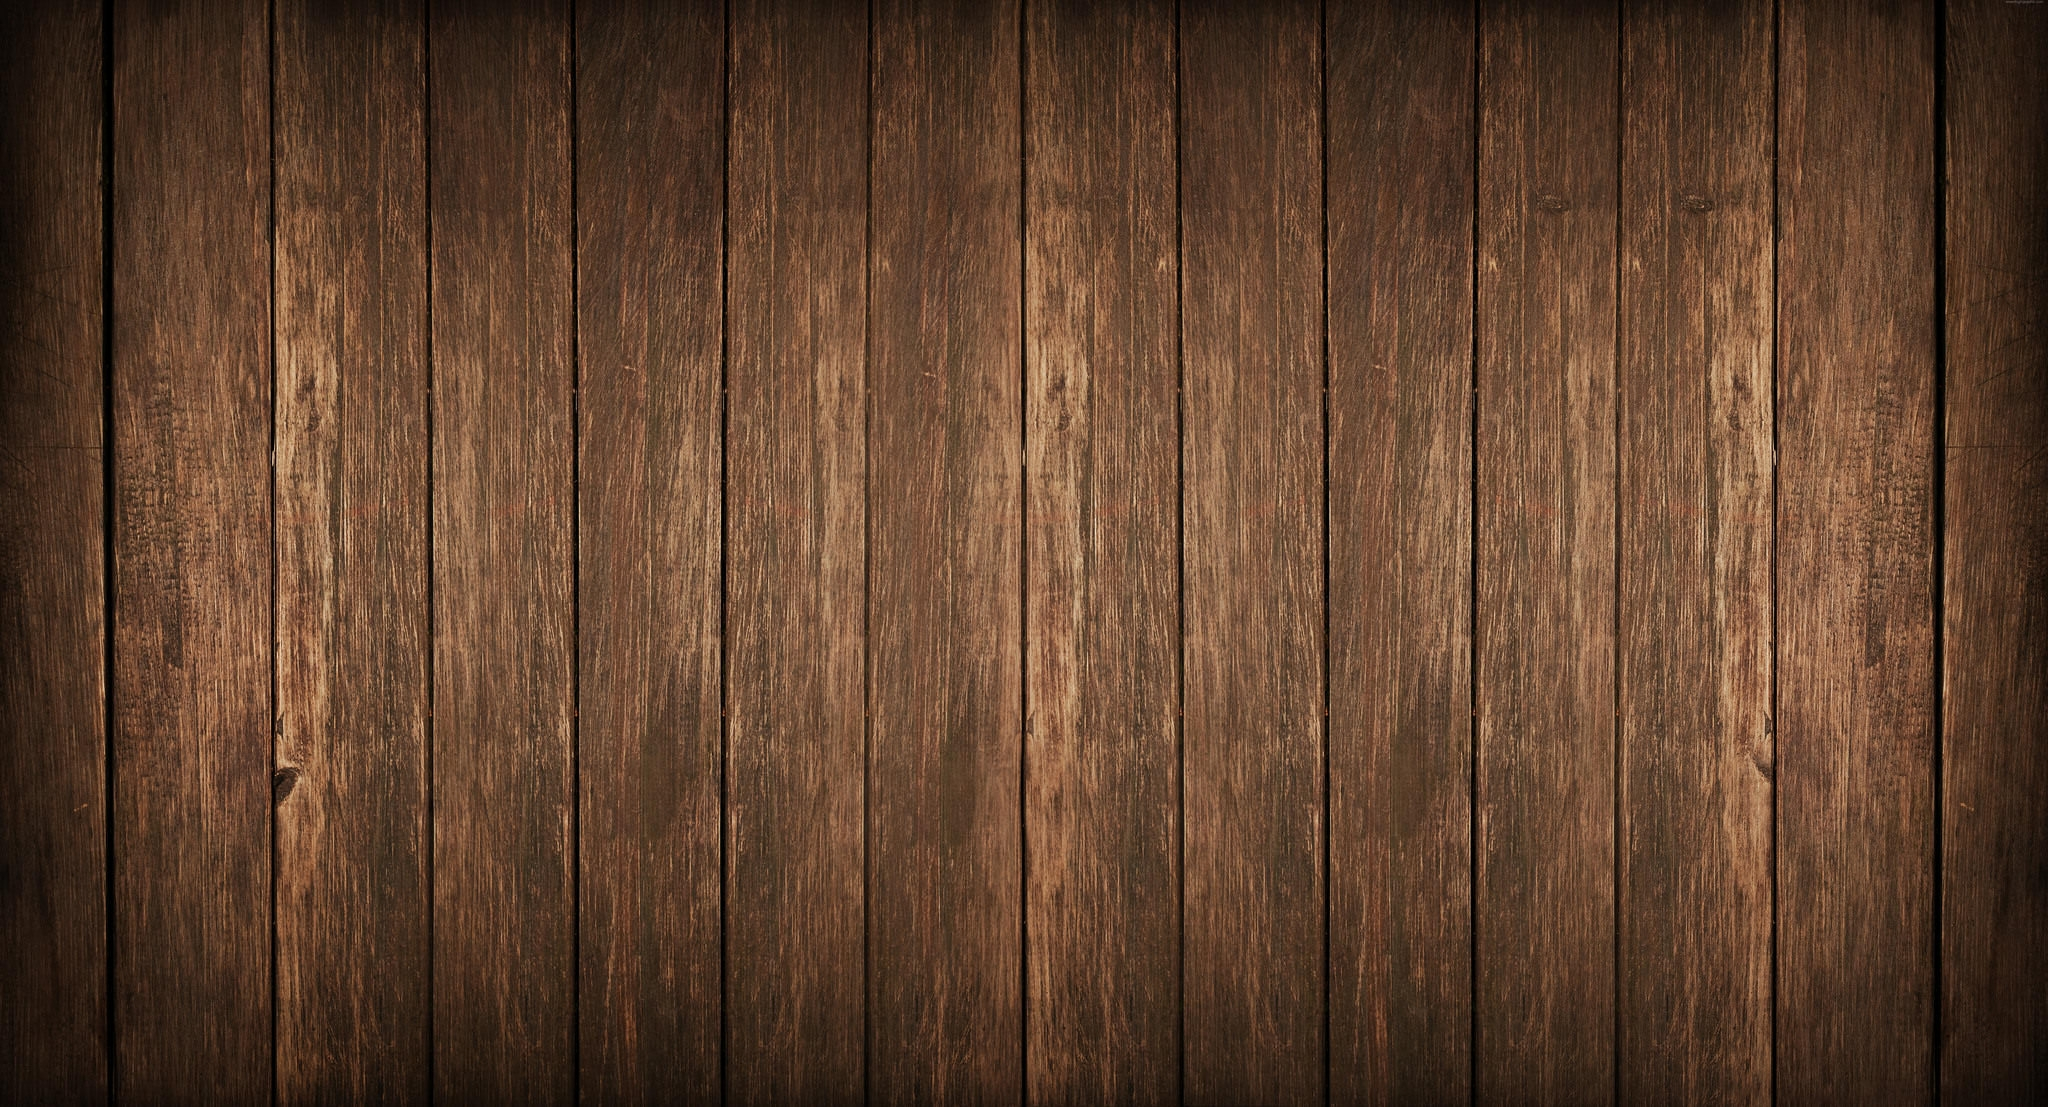 20 old wood backgrounds psd vector eps jpg download. Black Bedroom Furniture Sets. Home Design Ideas